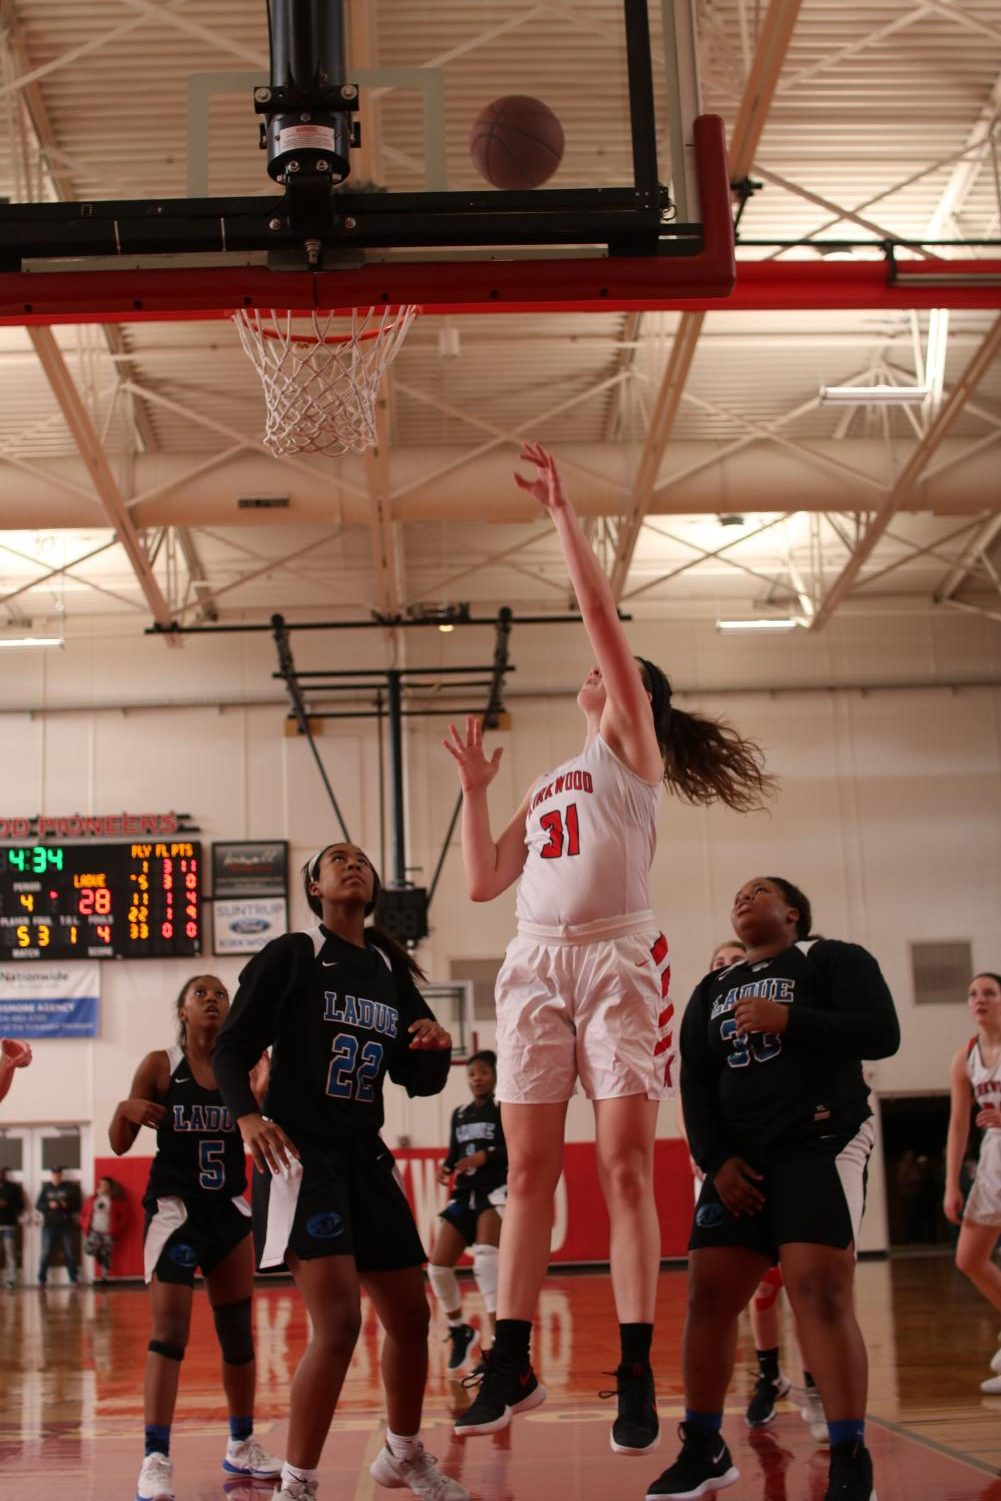 Abby+Ludbrook%2C+senior+goes+for+a+lay+up+during+the+girls+varsity+basketball+game+Dec.+7.+